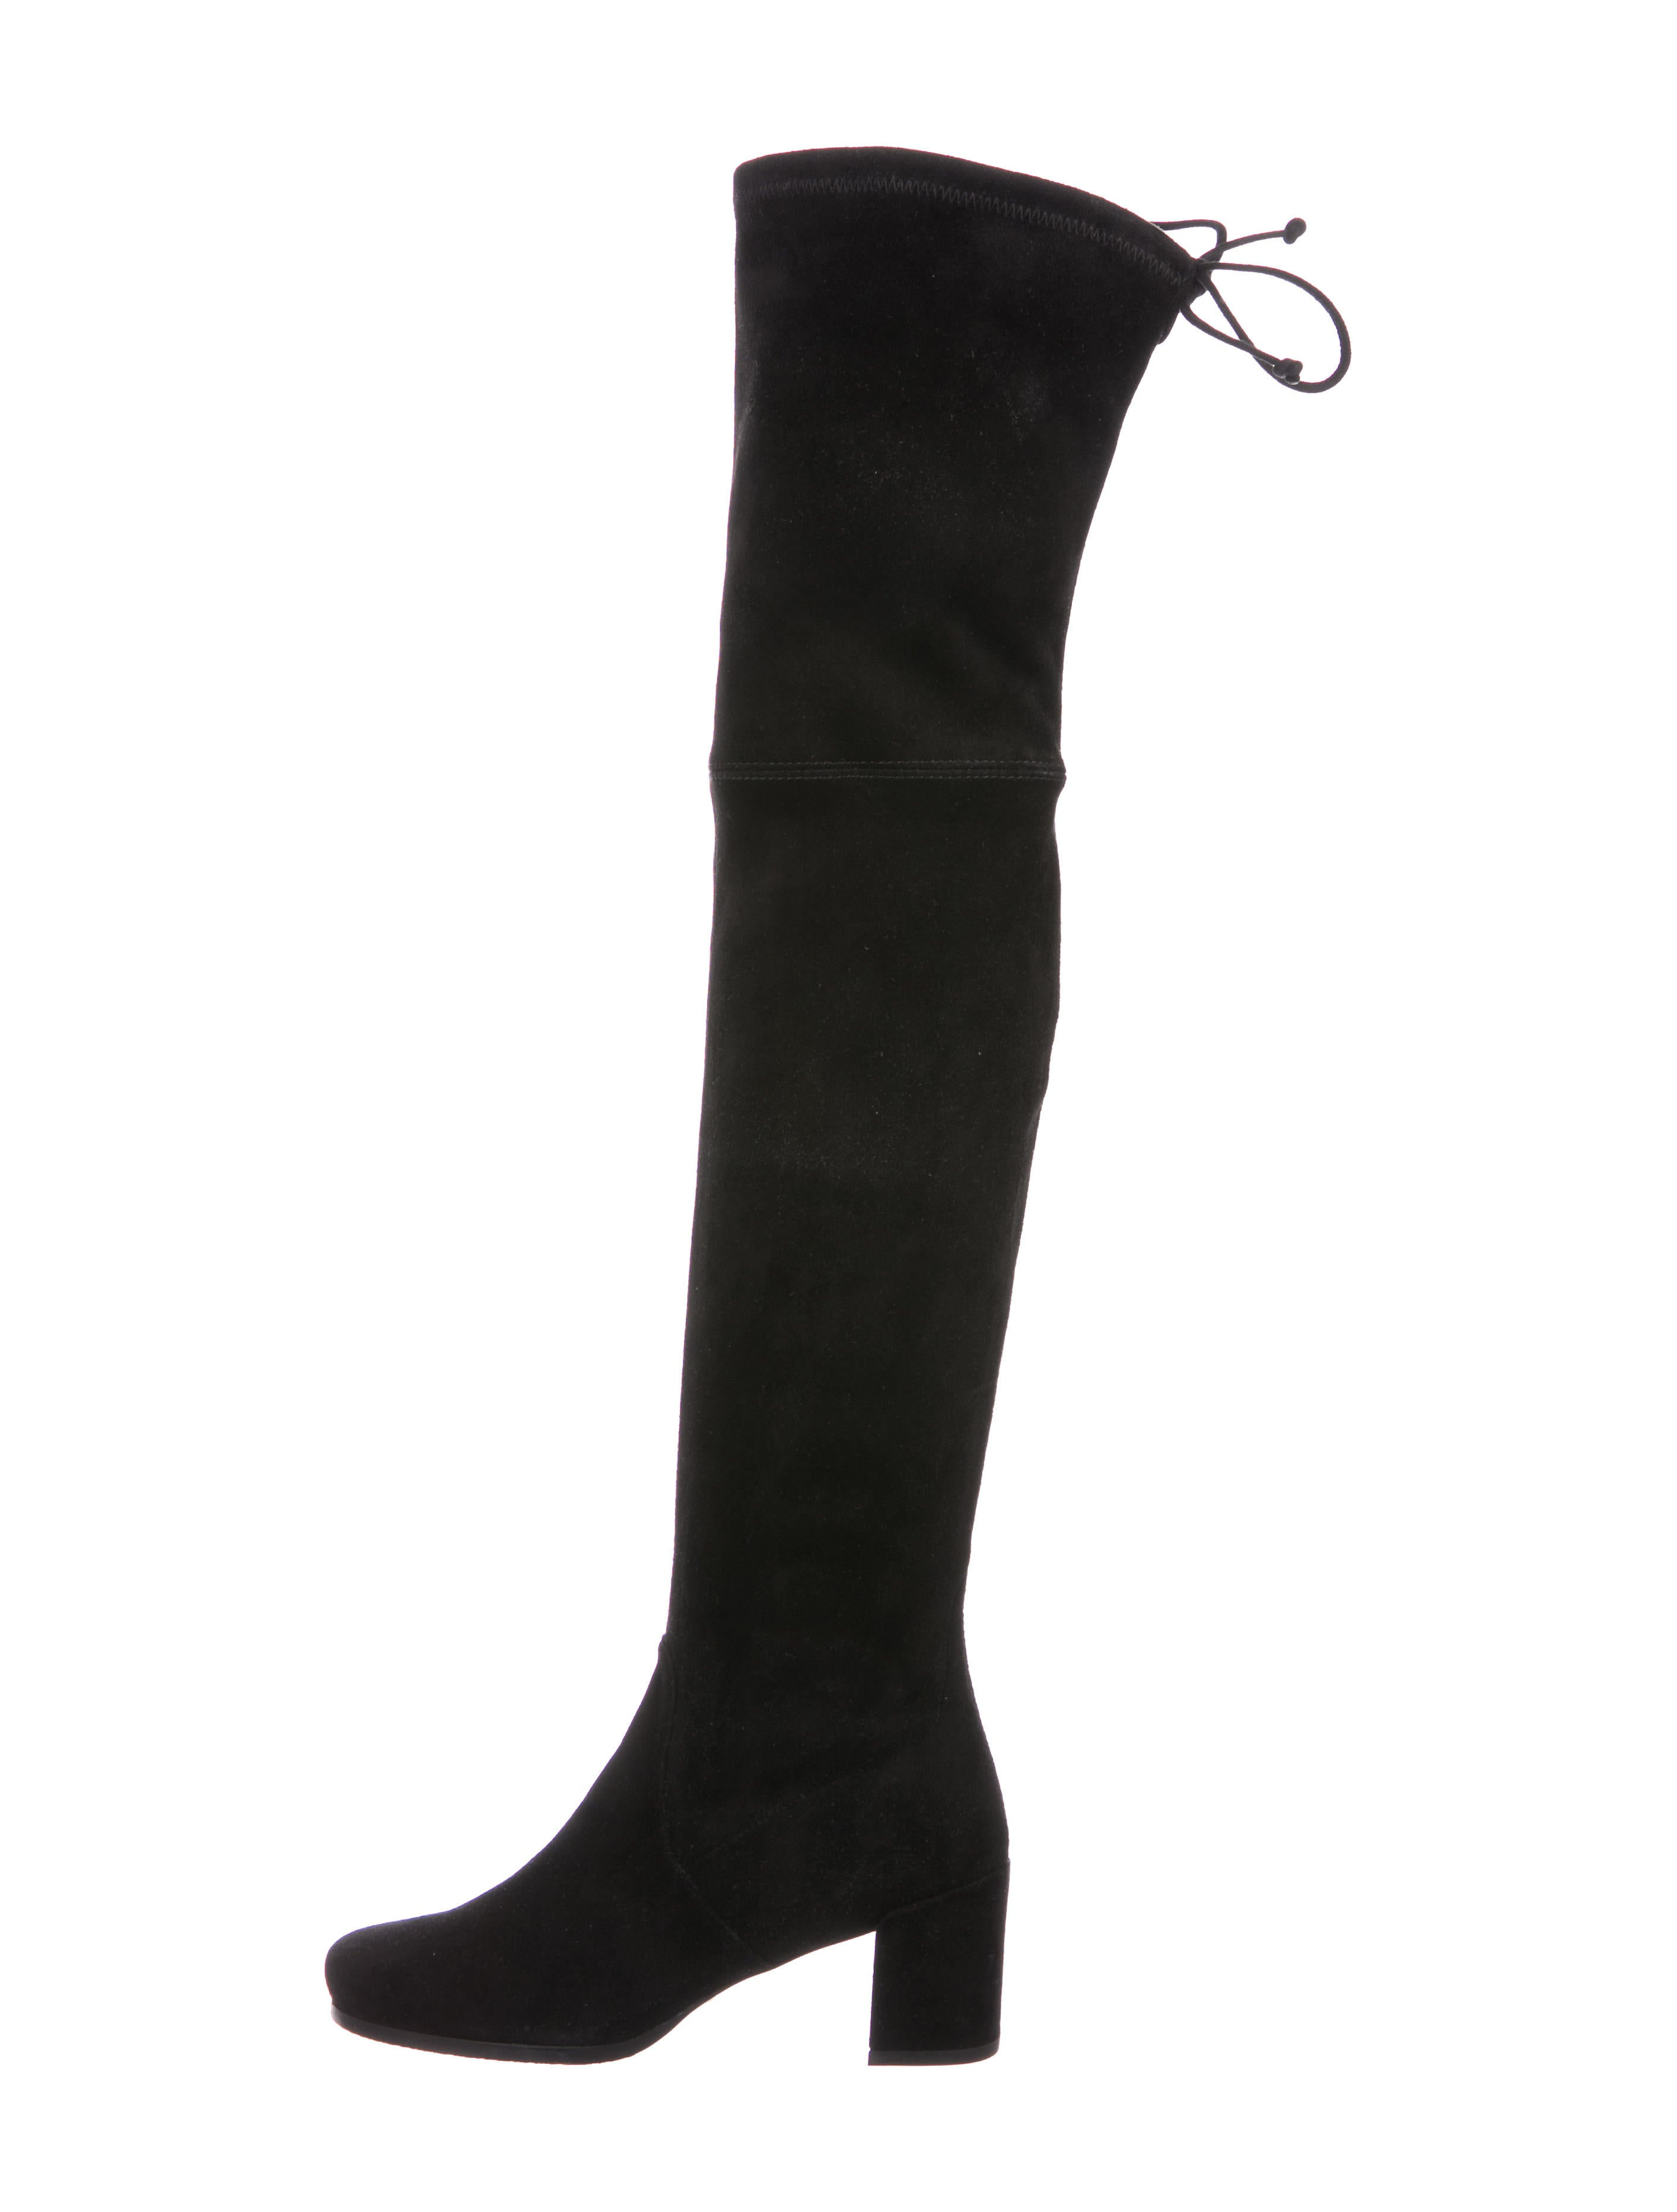 50424dc010b Stuart Weitzman Hinterland Over-The-Knee Boots - Shoes - WSU65408 ...